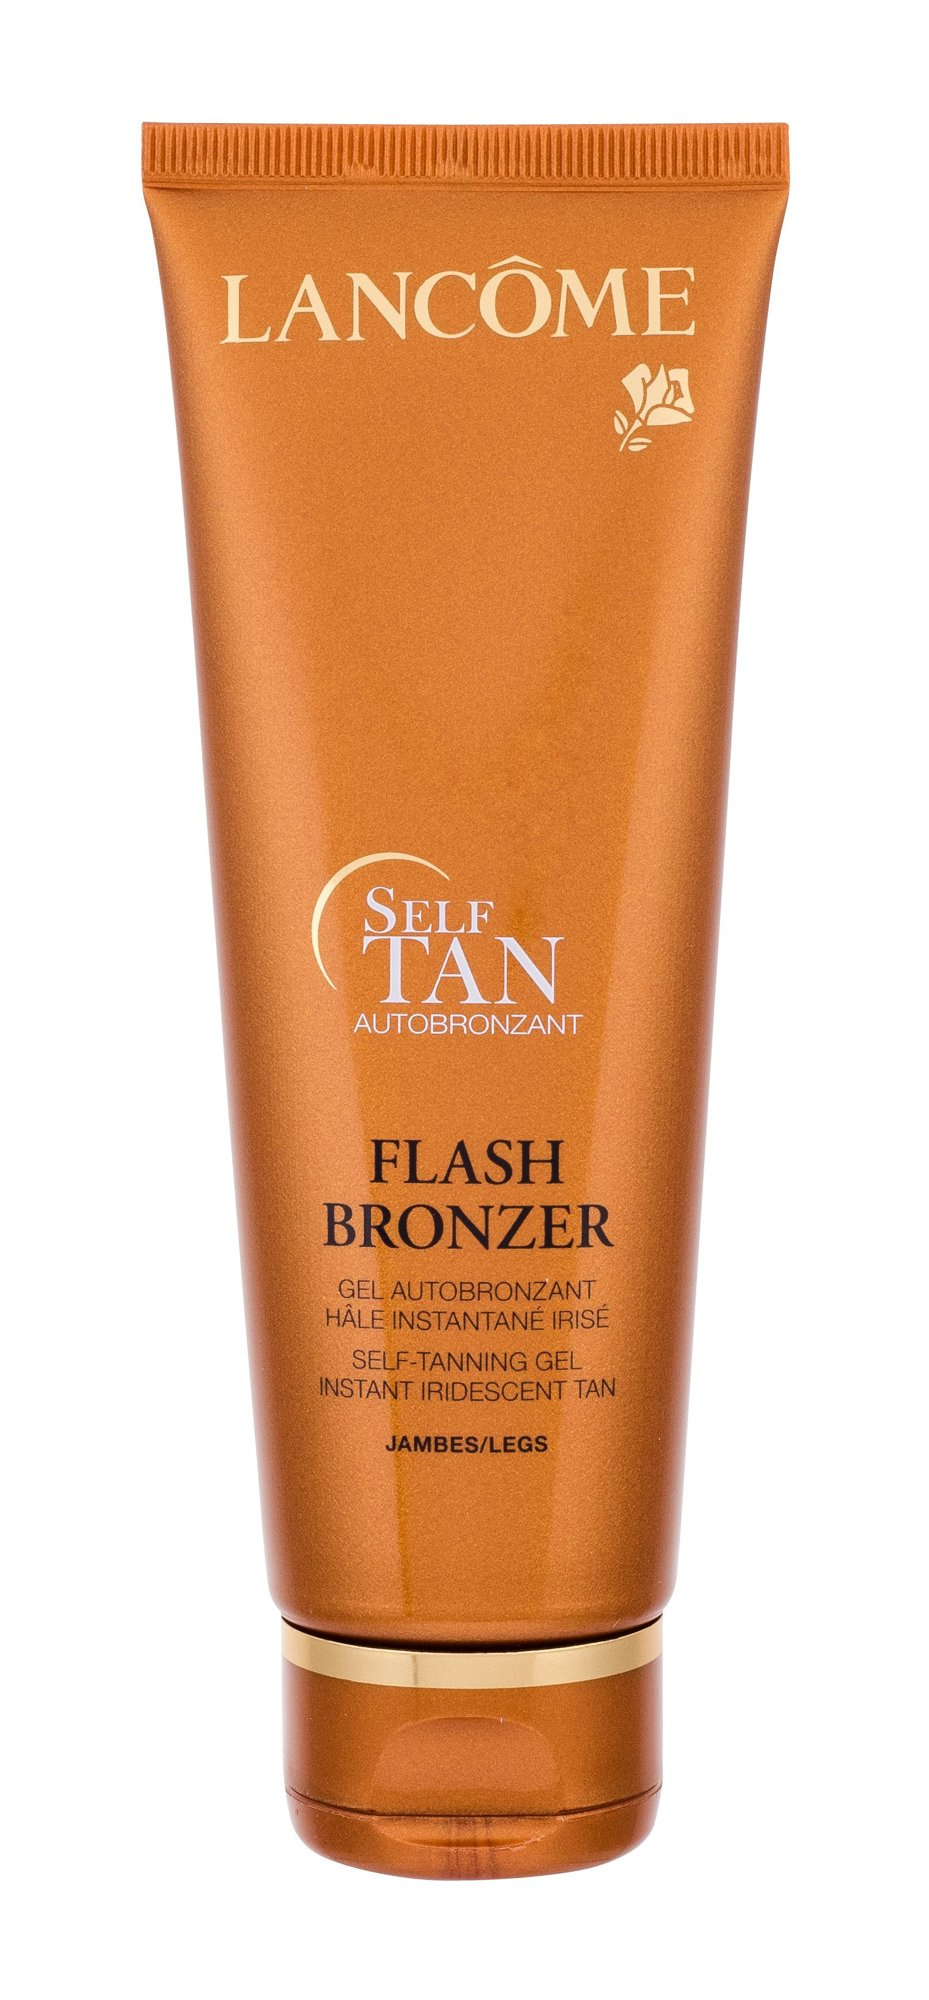 Lancôme Flash Bronzer Self Tanning Leg Gel Cosmetic 125ml